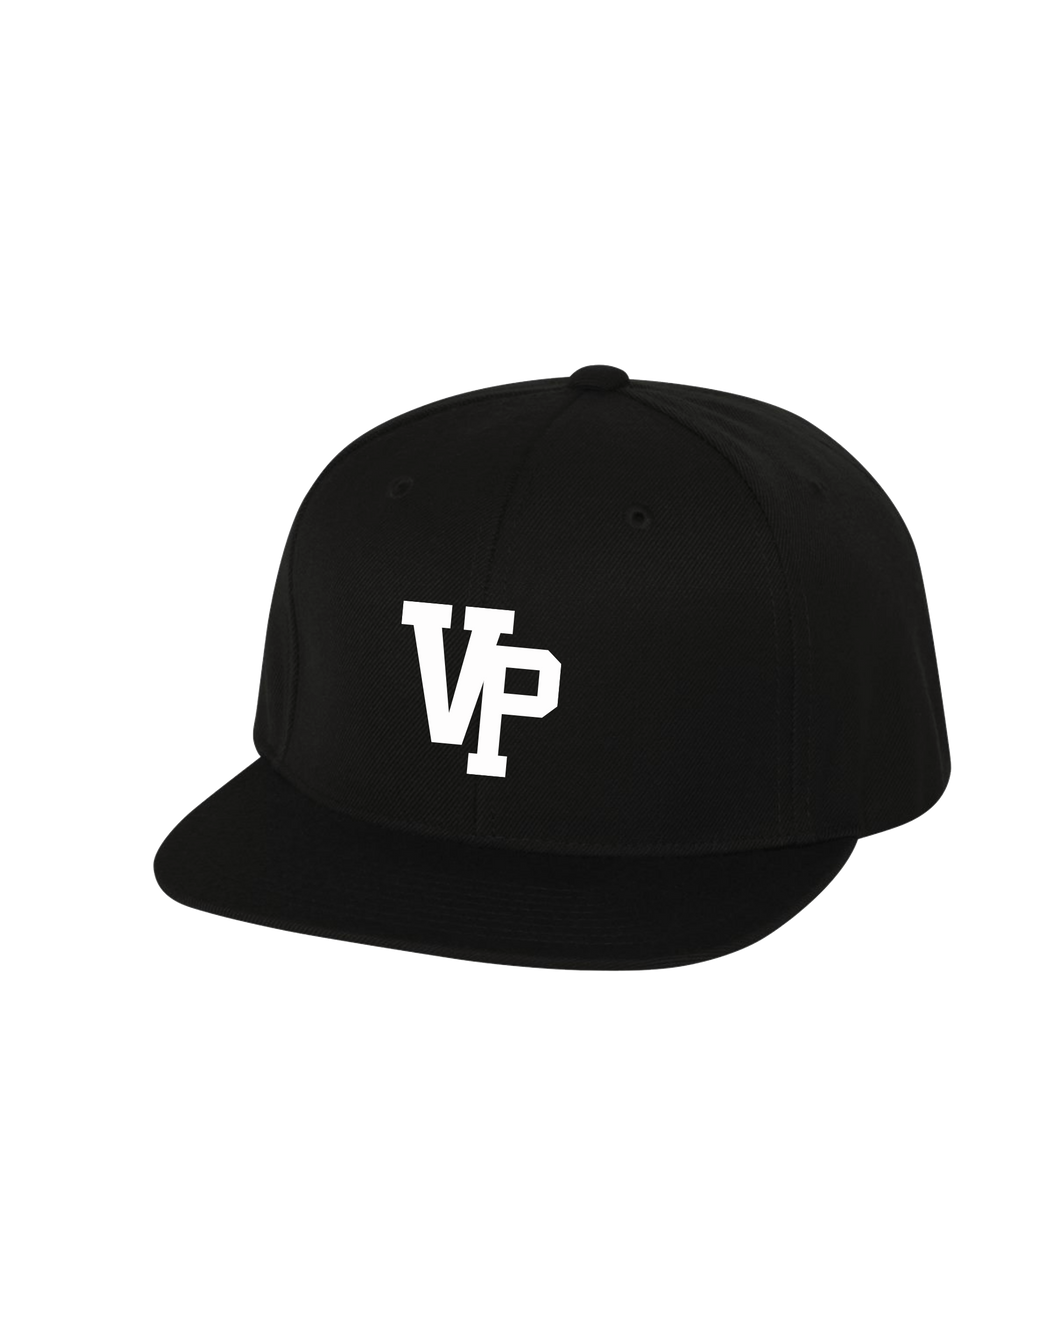 VPLL - Snapback - Black Hat *Raised Embroidery logo